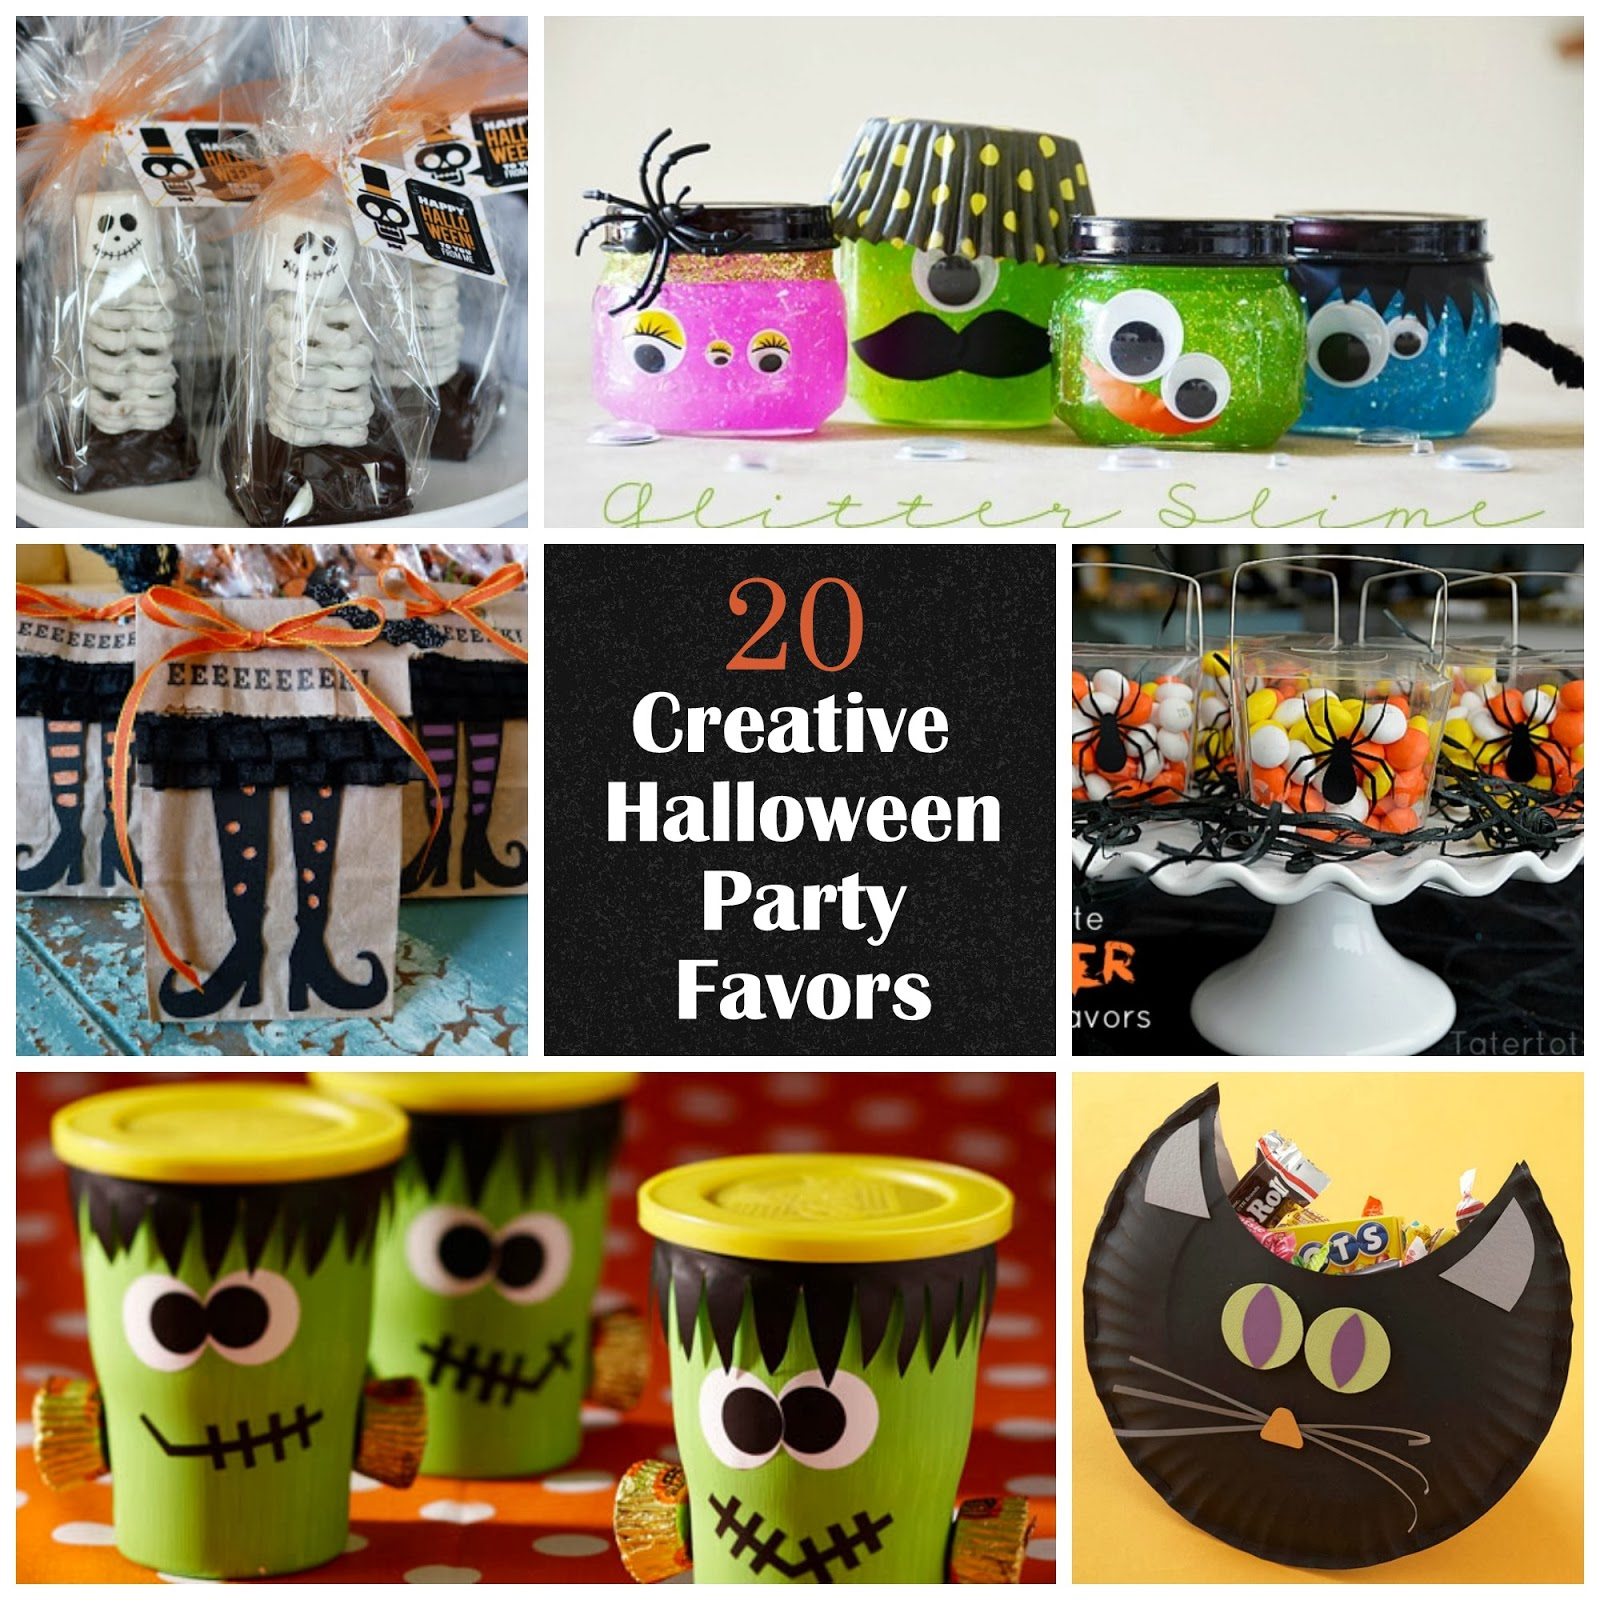 Halloween party decorations pinterest - photo#30